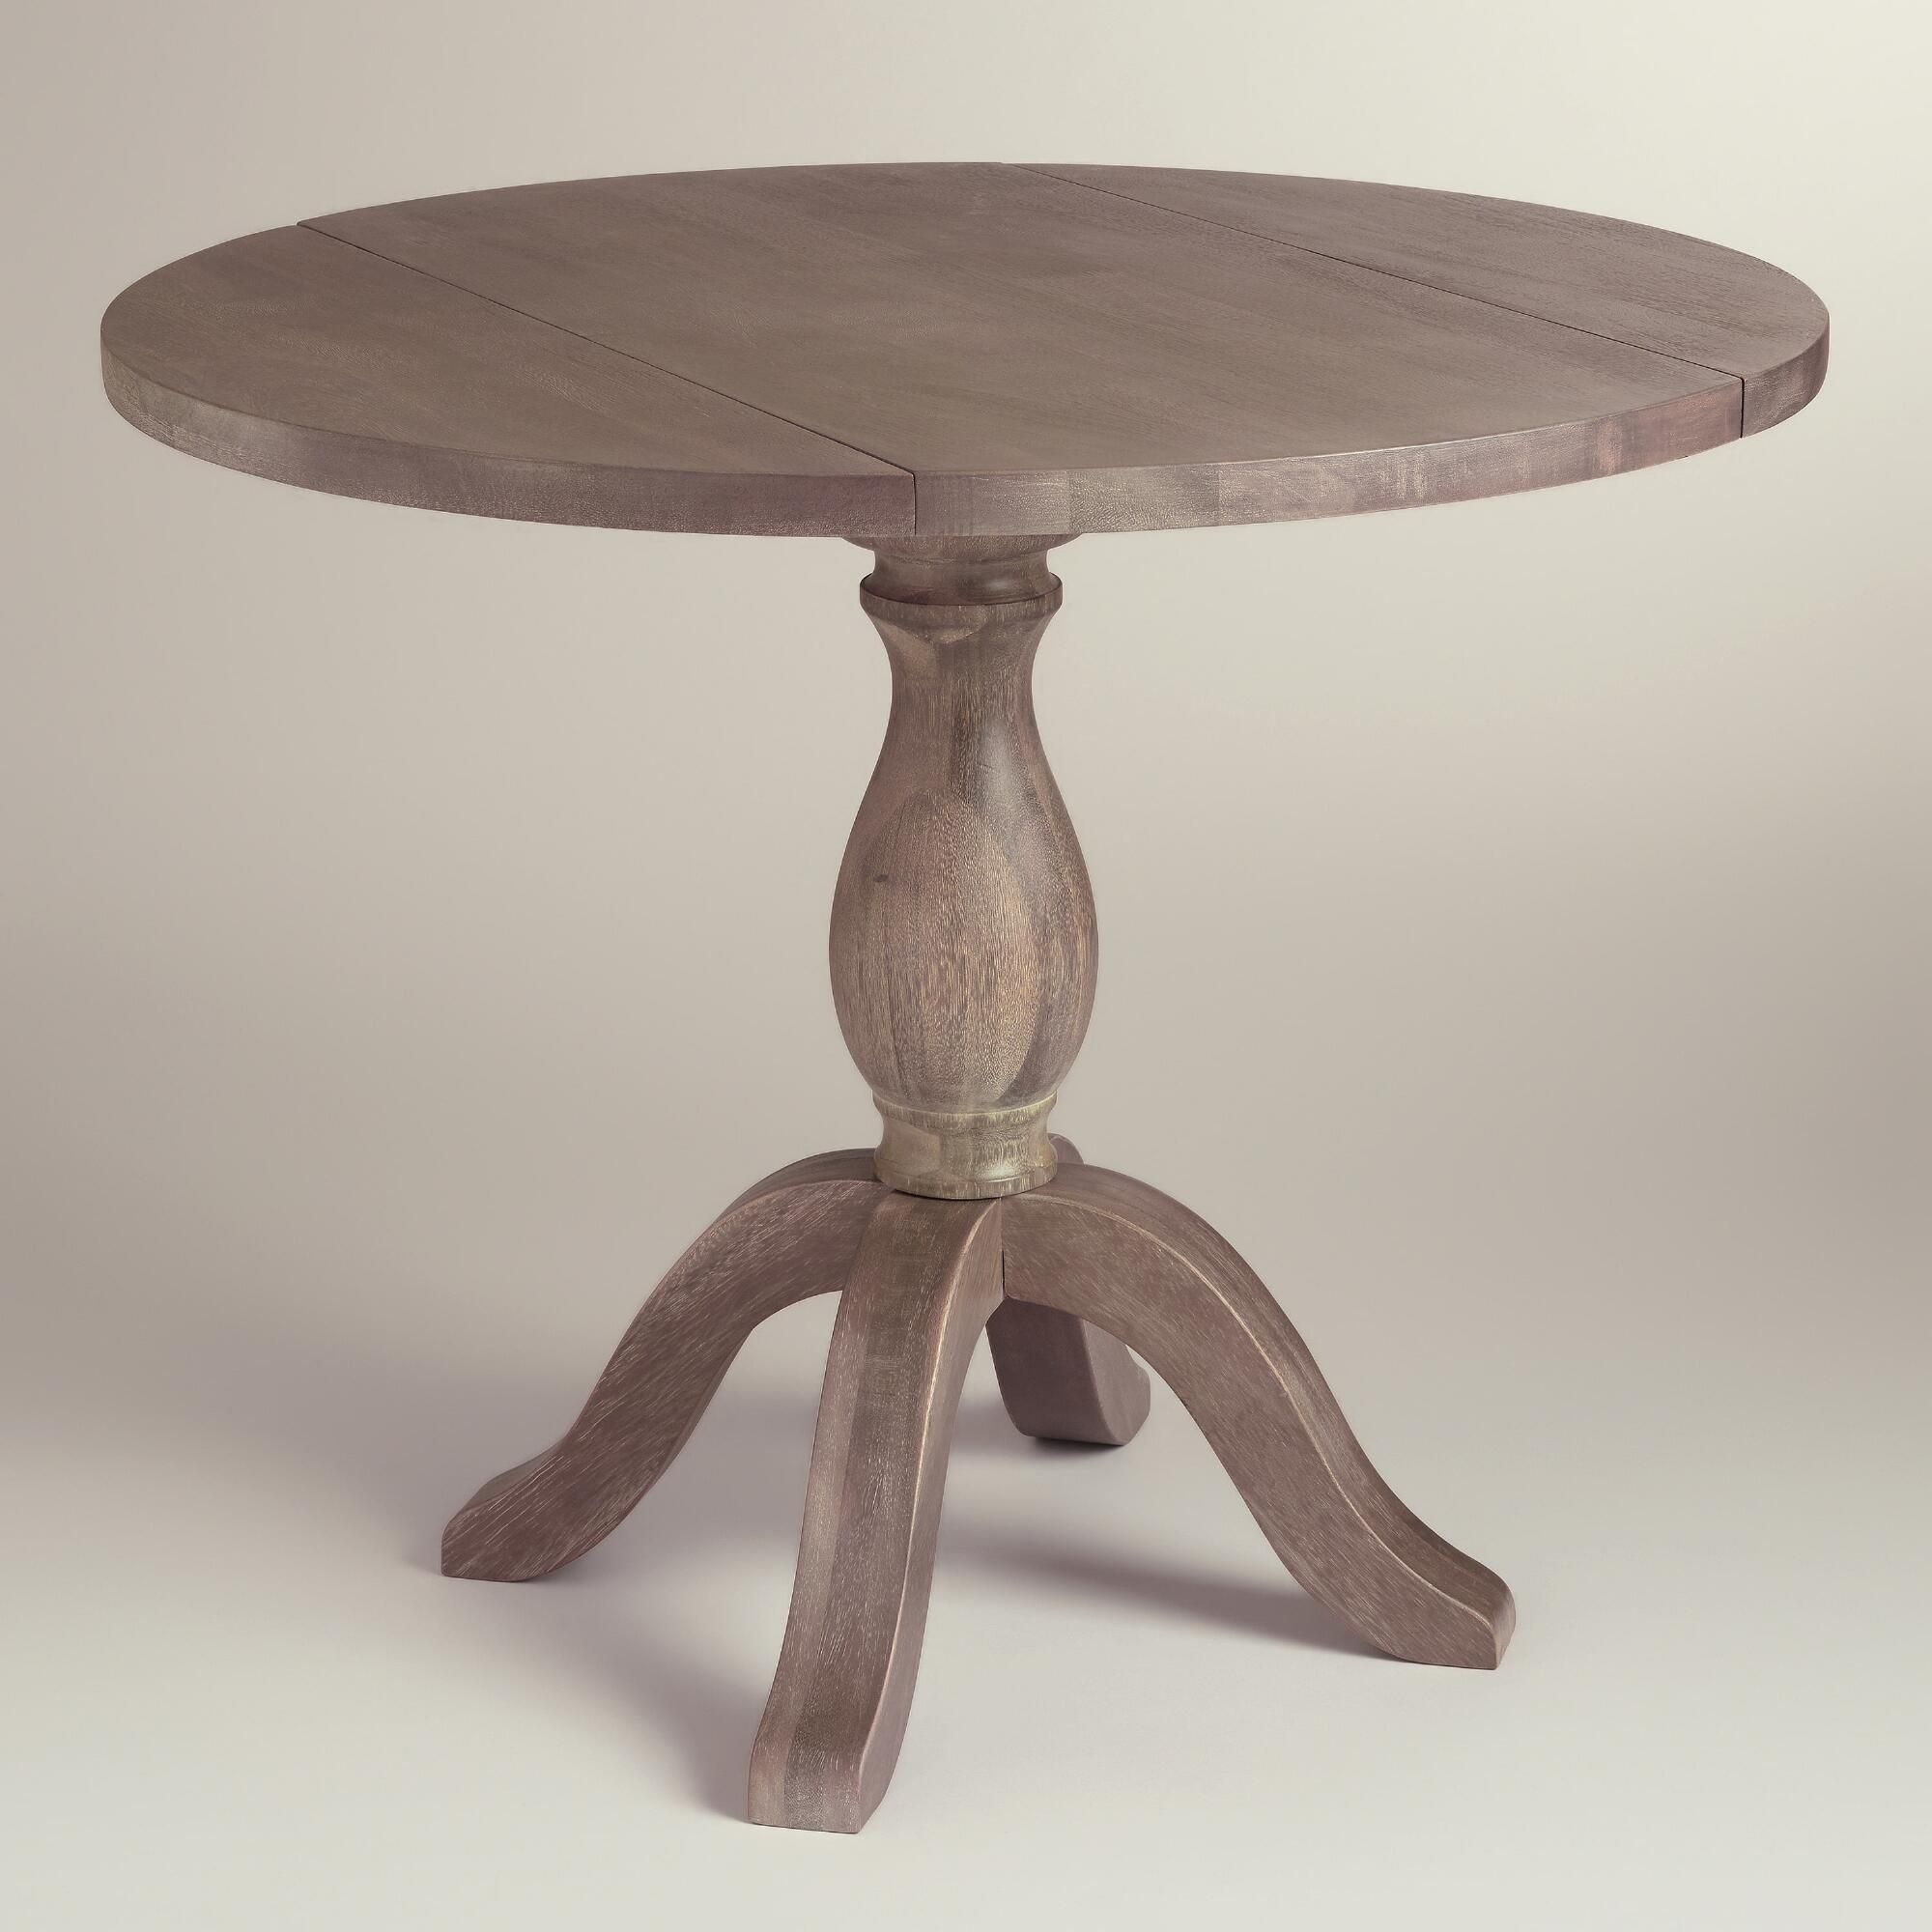 Round Weathered Gray Wood Jozy Drop Leaf Table Drop Leaf Table Small Dining Area Drop Leaf Dining Table